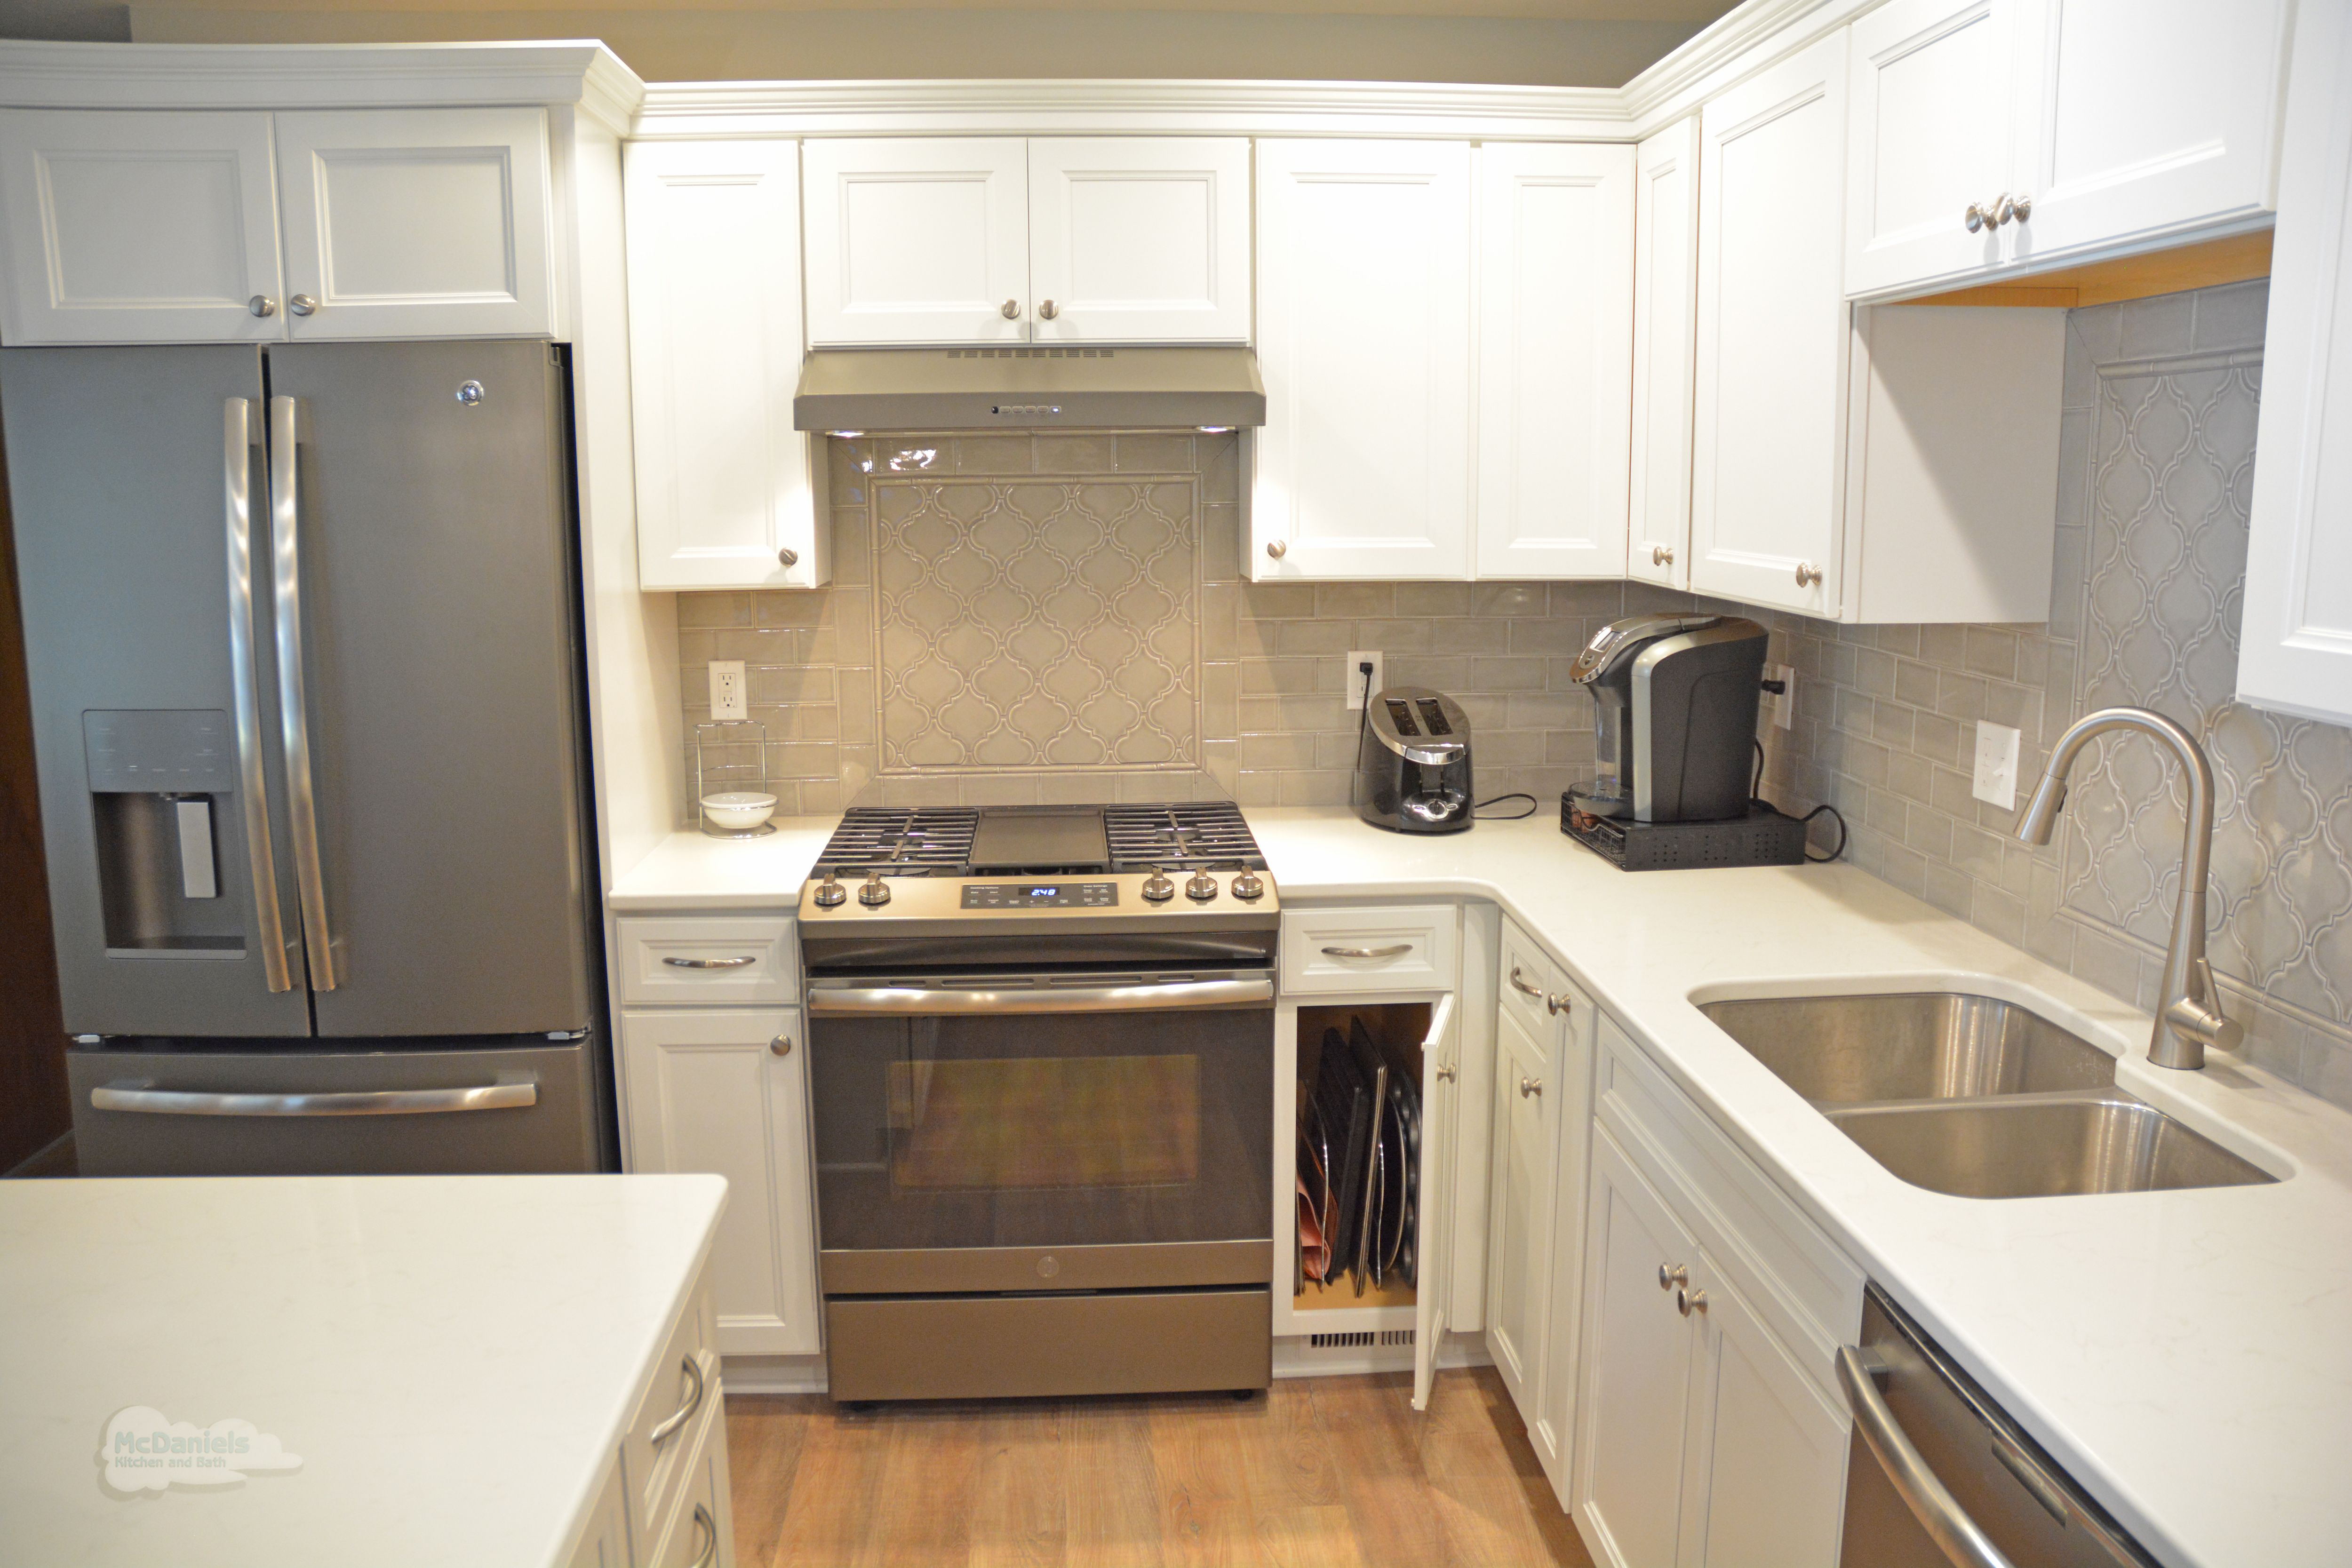 This Kitchen Design In Lansing Features Purestyle Laminate Cabinets From Aristokraft The Base Cabi Kitchen Design Kitchen Remodel Kitchen And Bath Remodeling